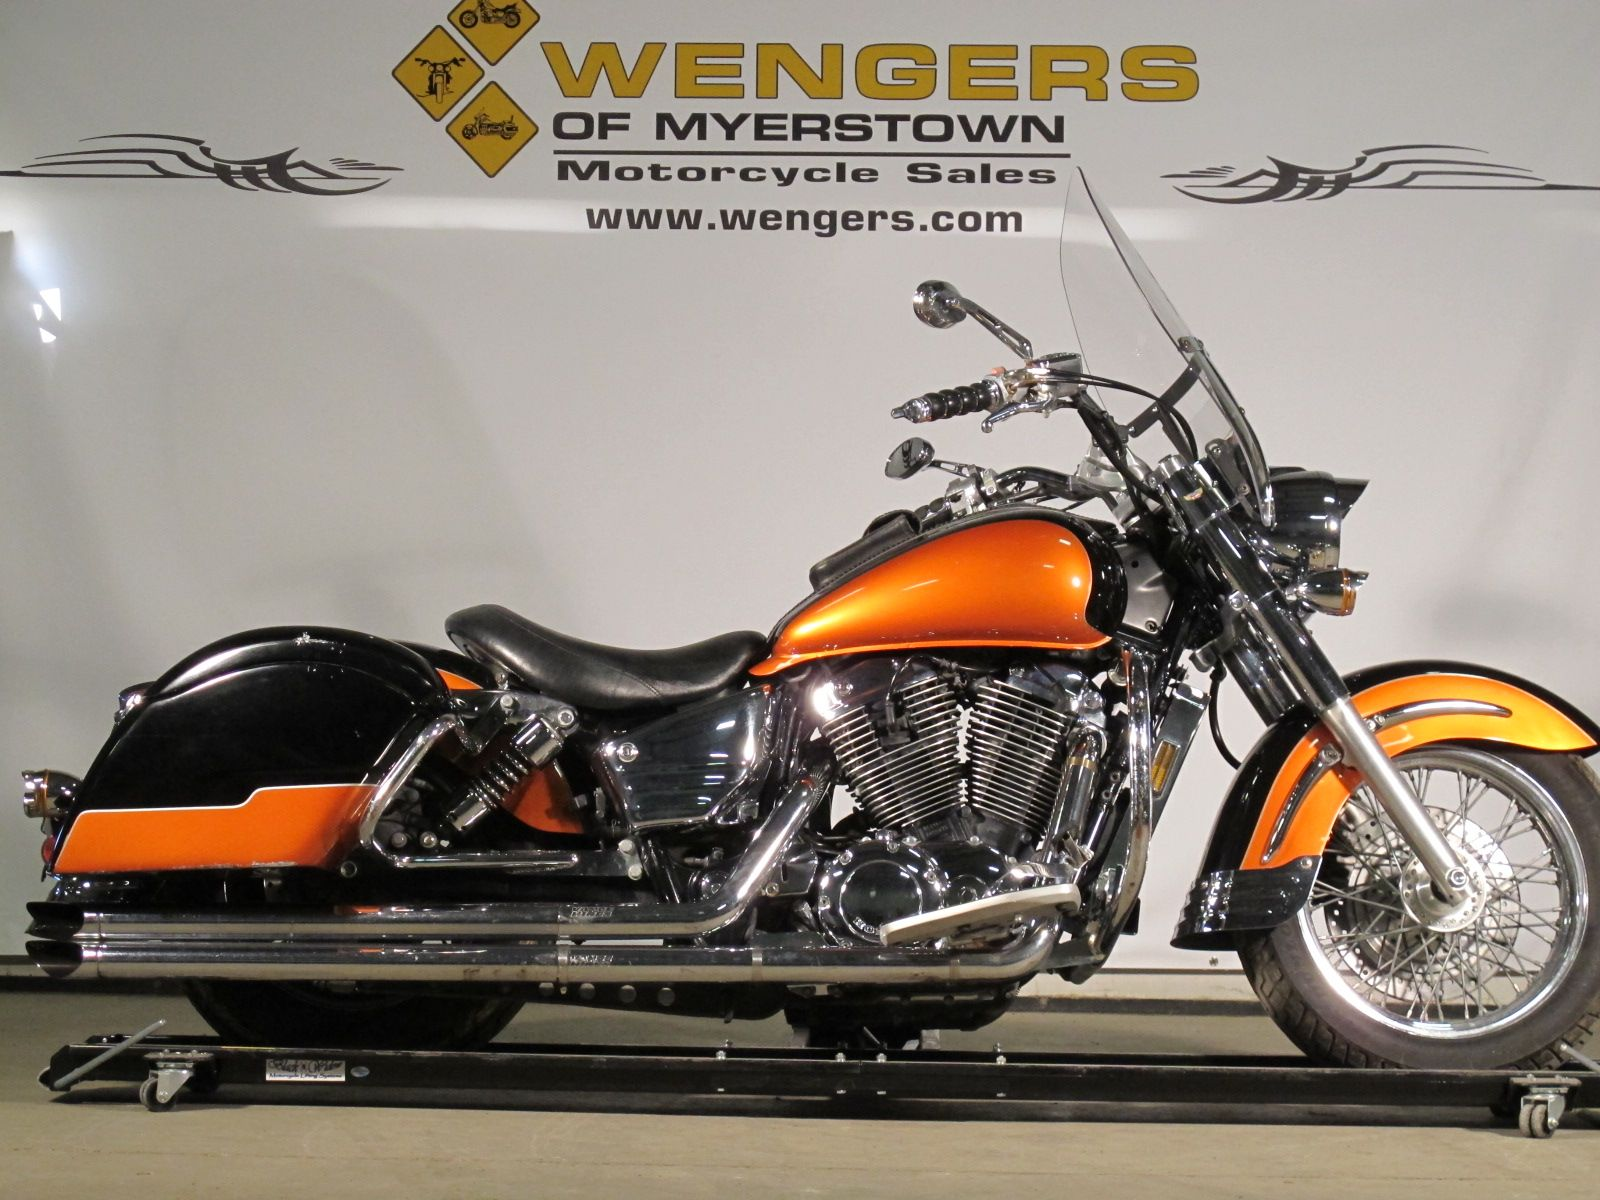 Wengers Of Myerstown >> 2002 Honda Shadow Aero 1100 For Sale At Wengers Of Myerstown